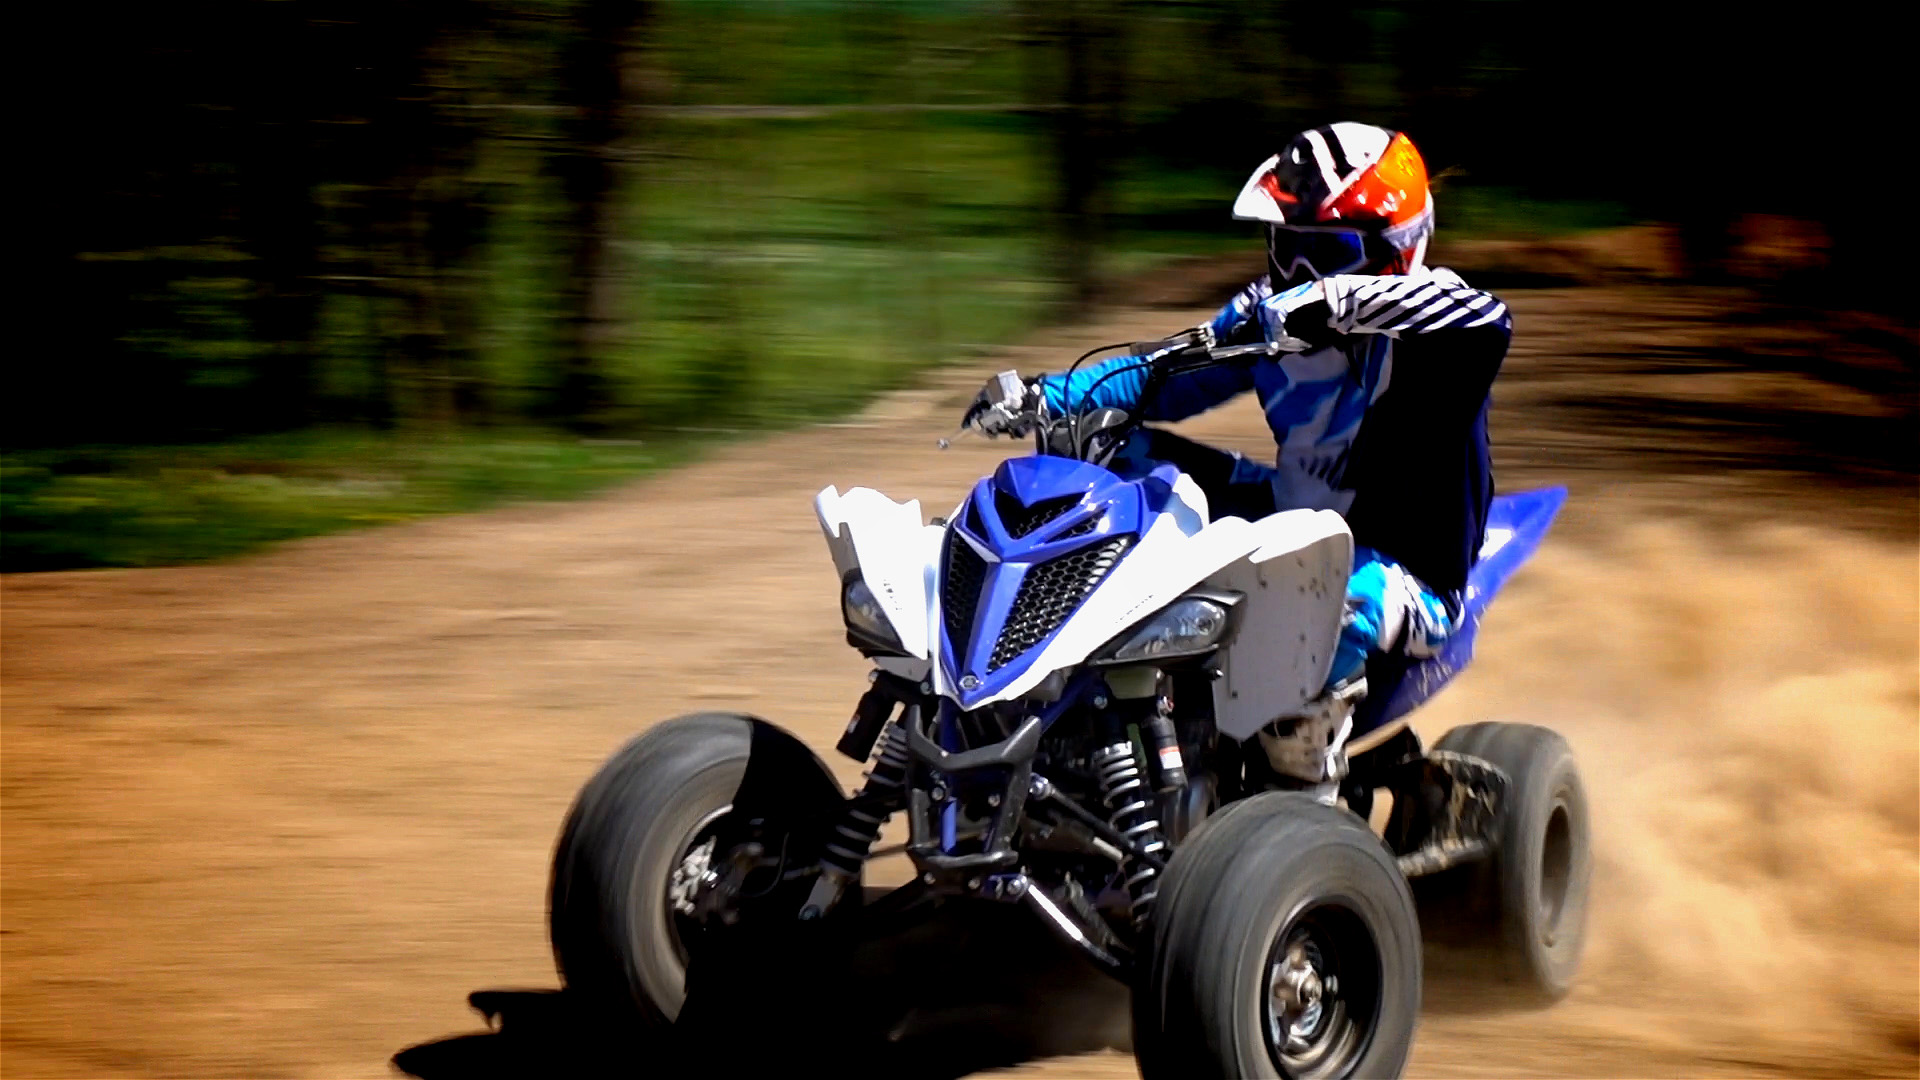 Yamaha raptor 700r trail and track test review with video for Yamaha 700r raptor